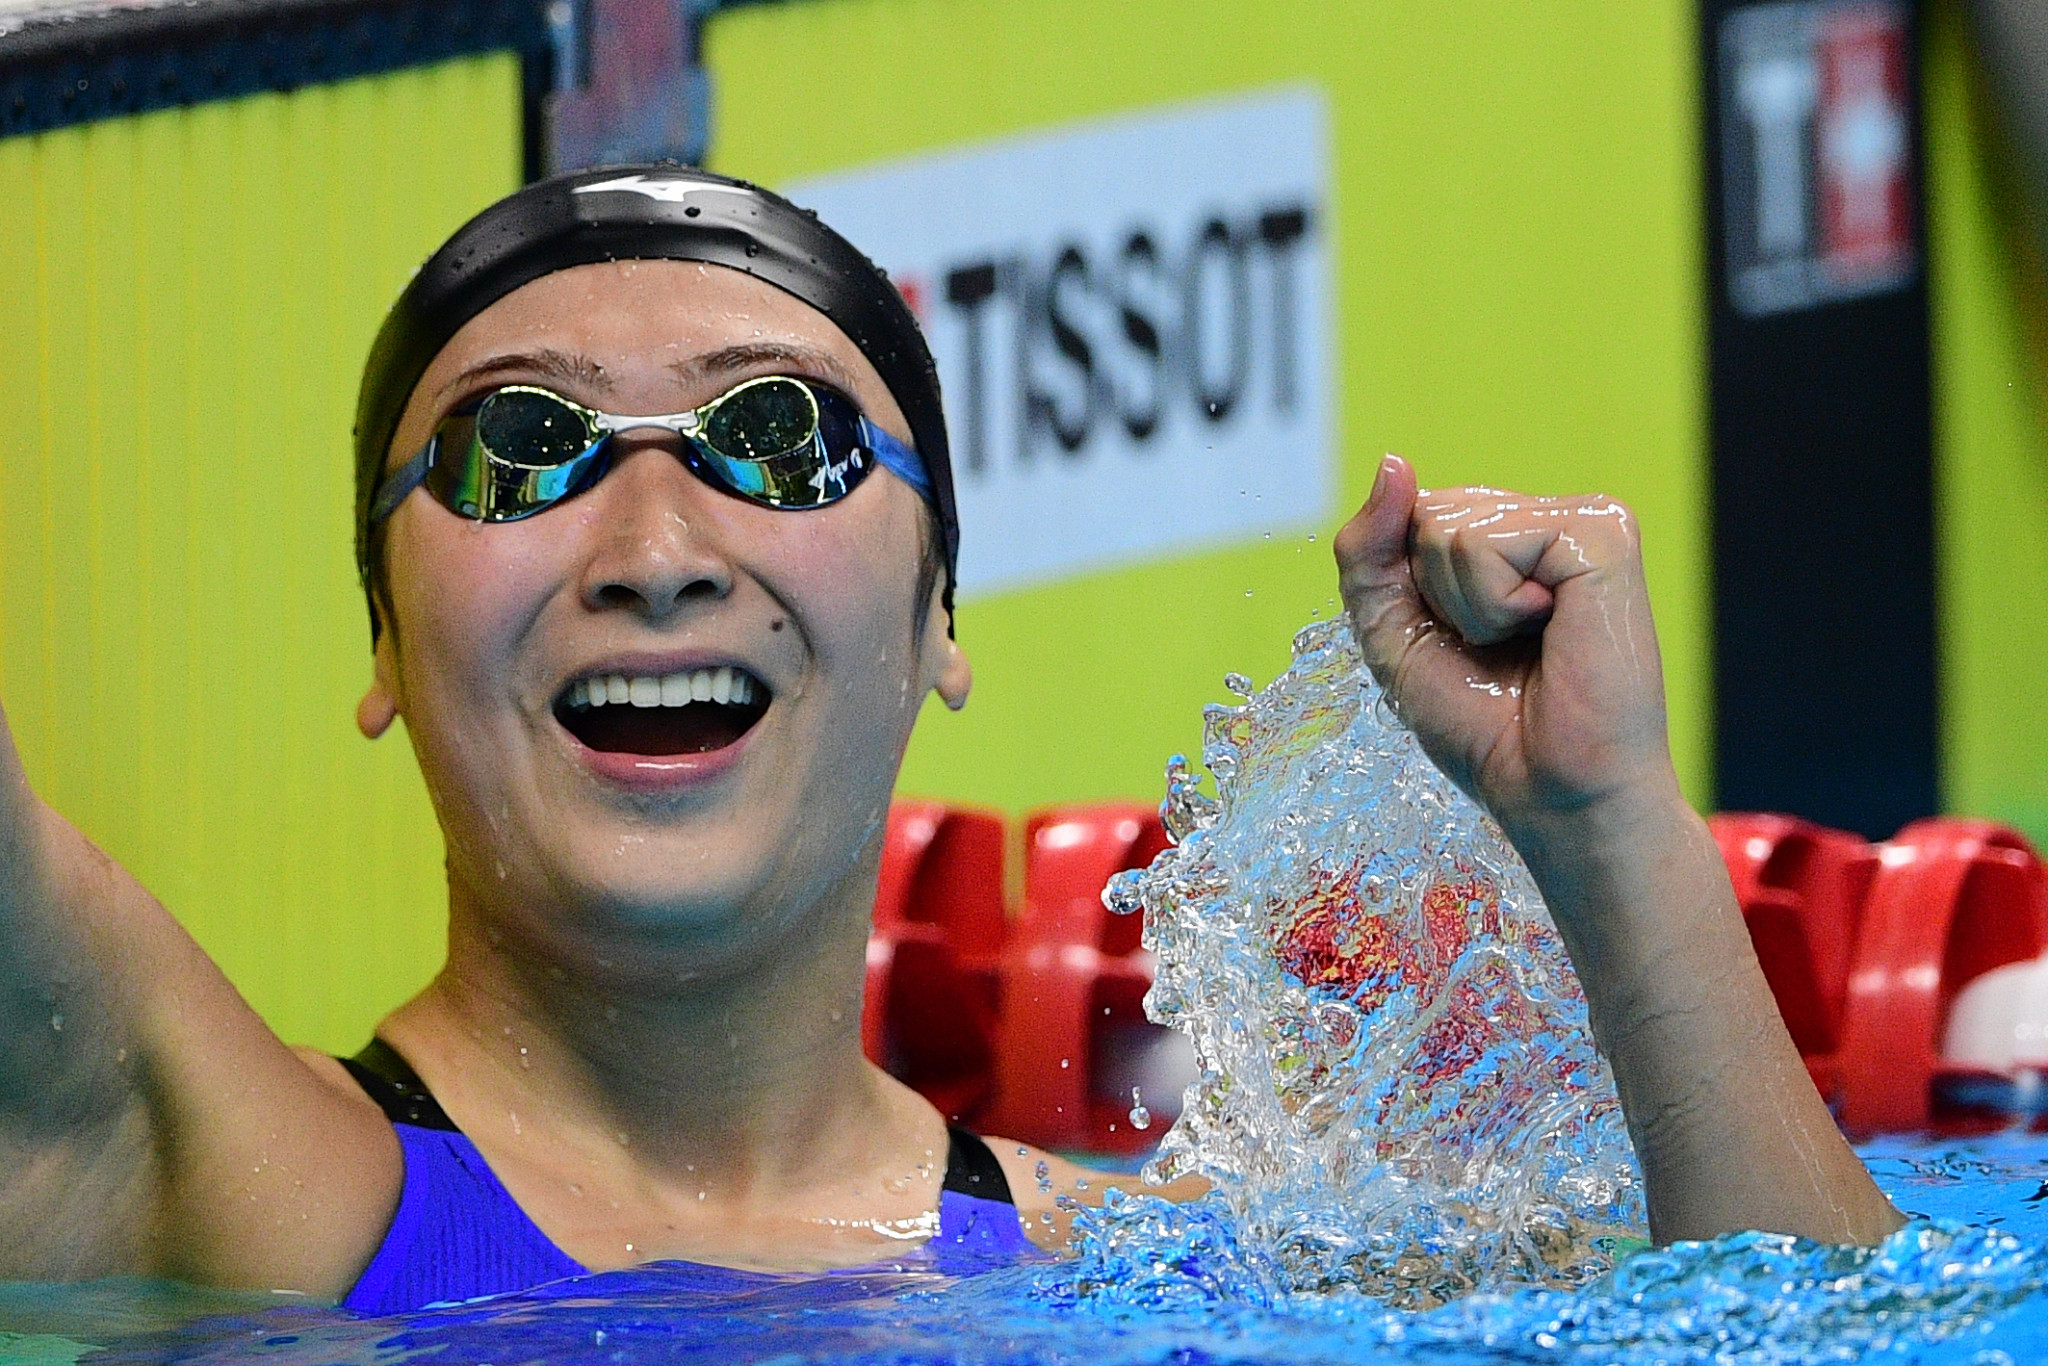 Japan's Rikako Ikee won two golds and set two Games records, at the GBK Aquatics Centre ©Getty Images